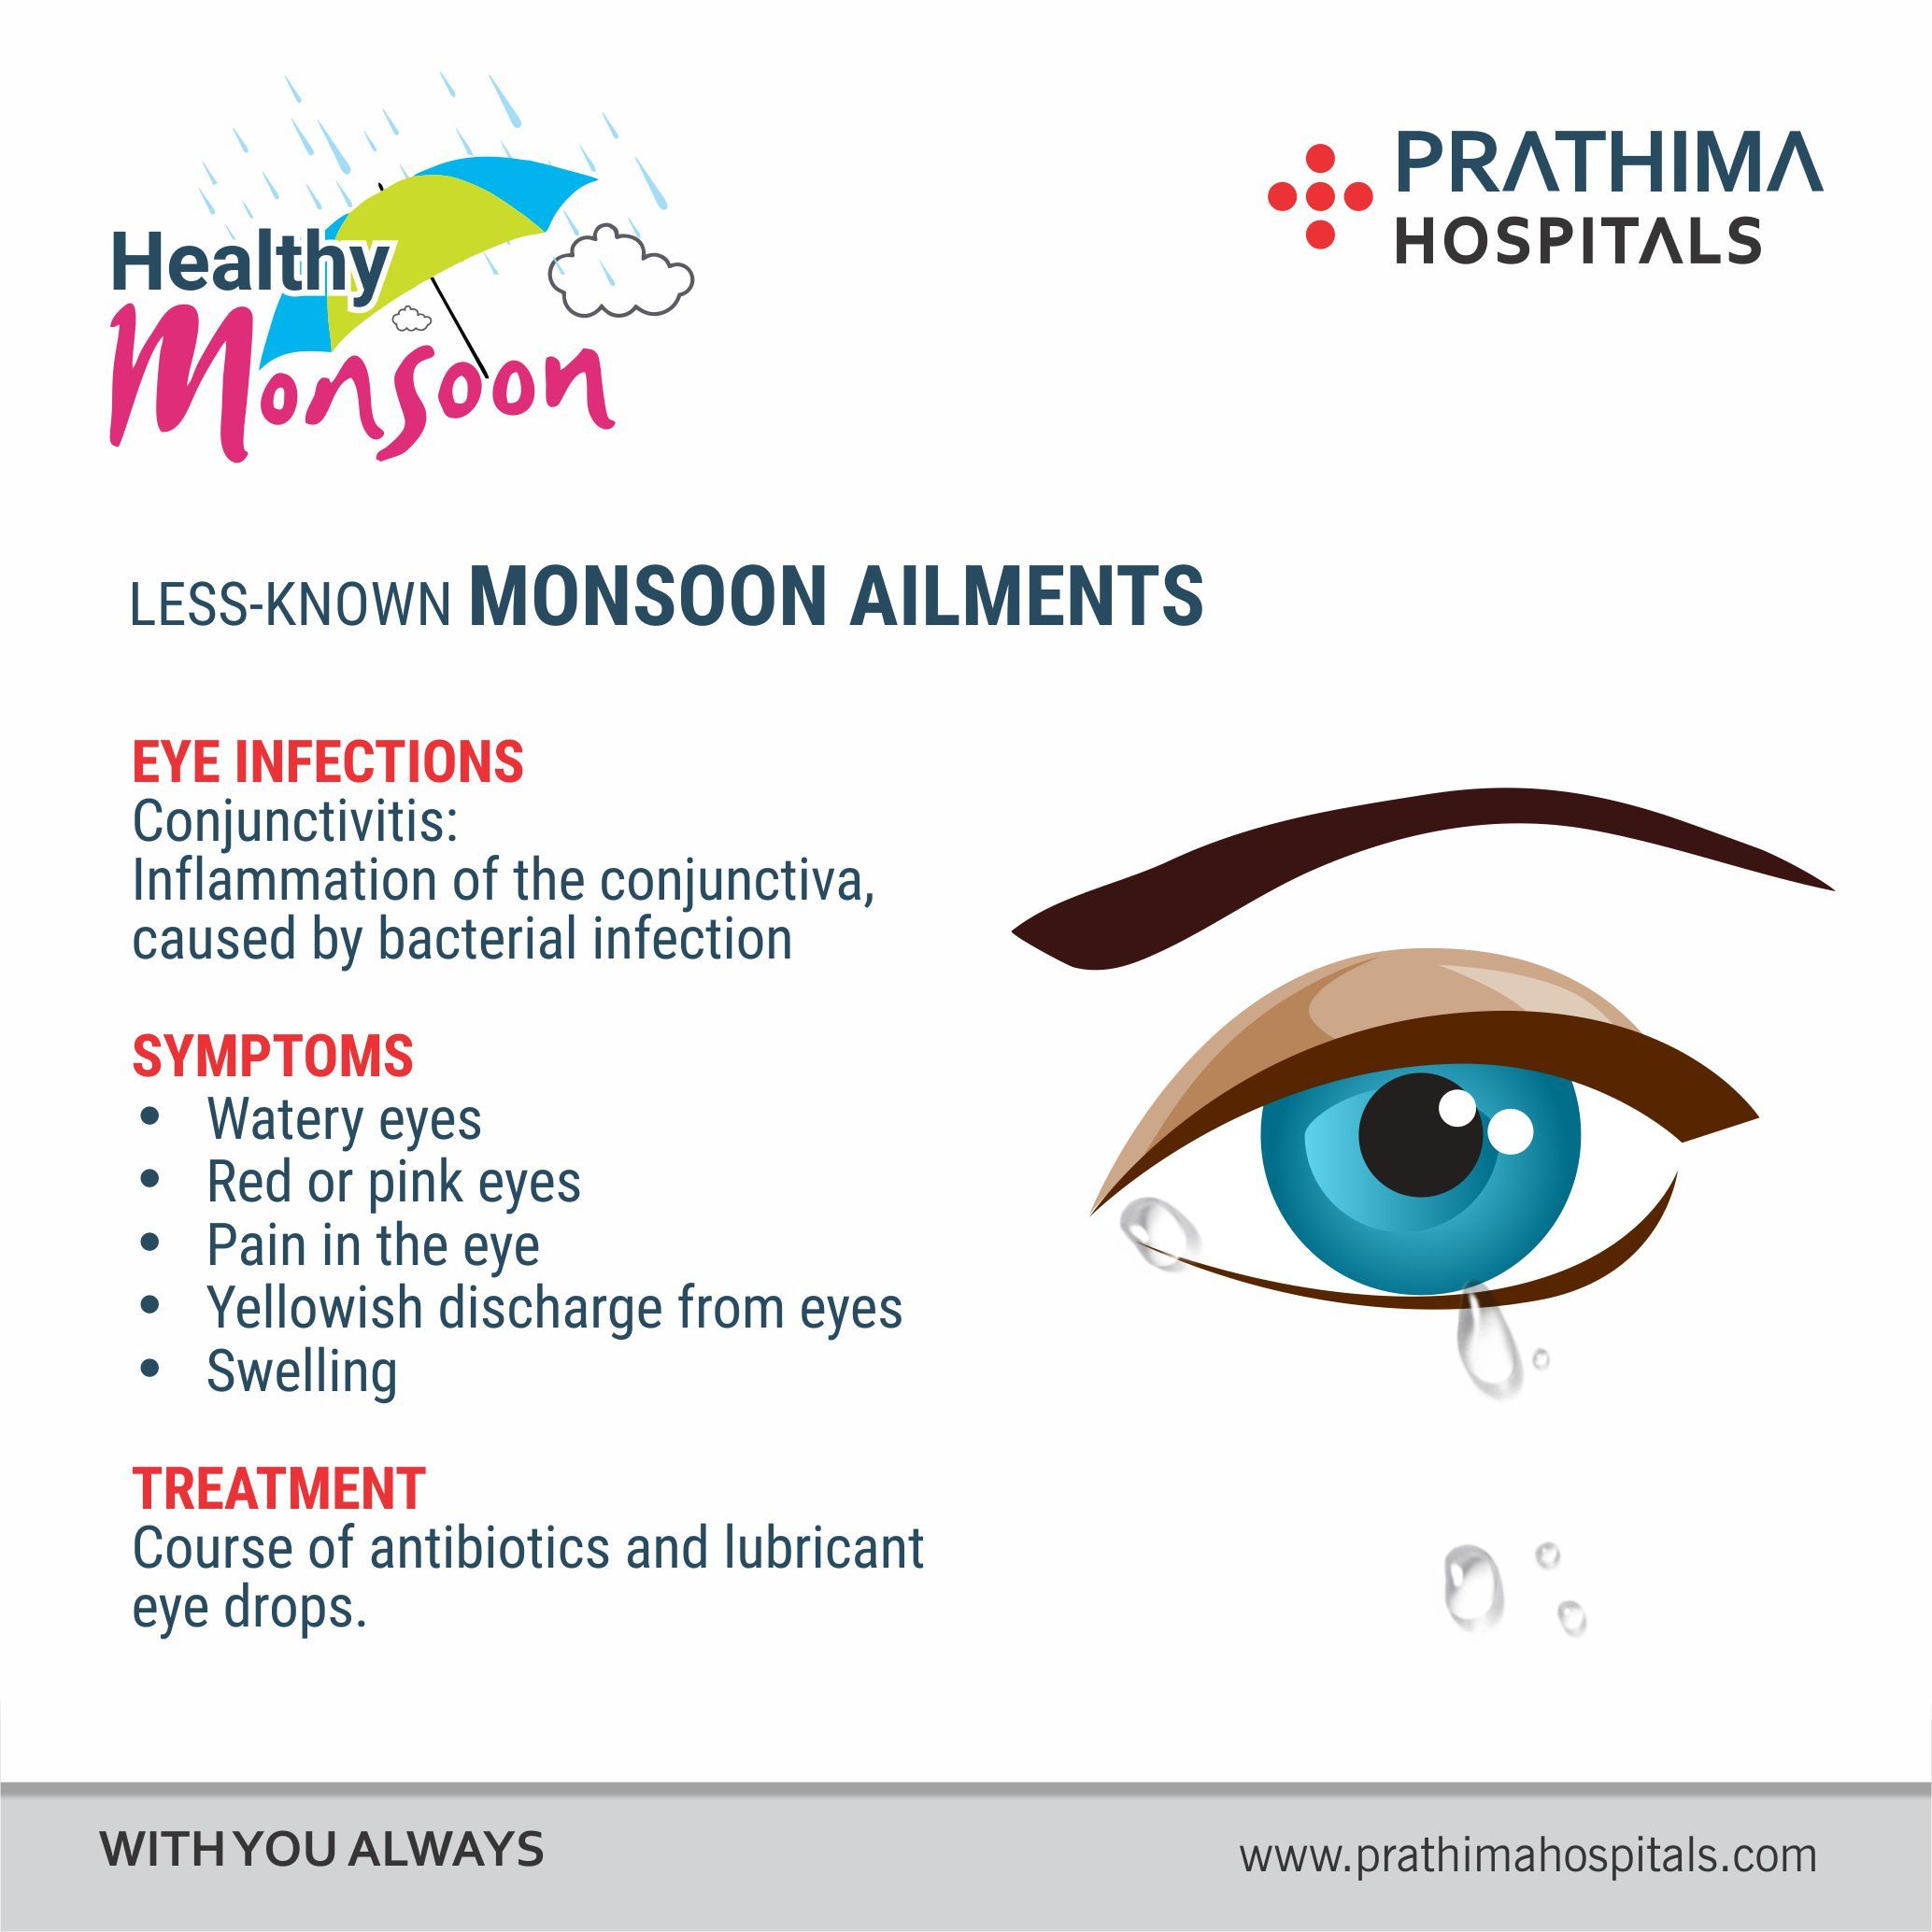 Allergic Conjunctivitis Vs Bacterial Pictures To Pin On: #prathimahospitals LESS-KNOWN MONSOON AILMENTS EYE